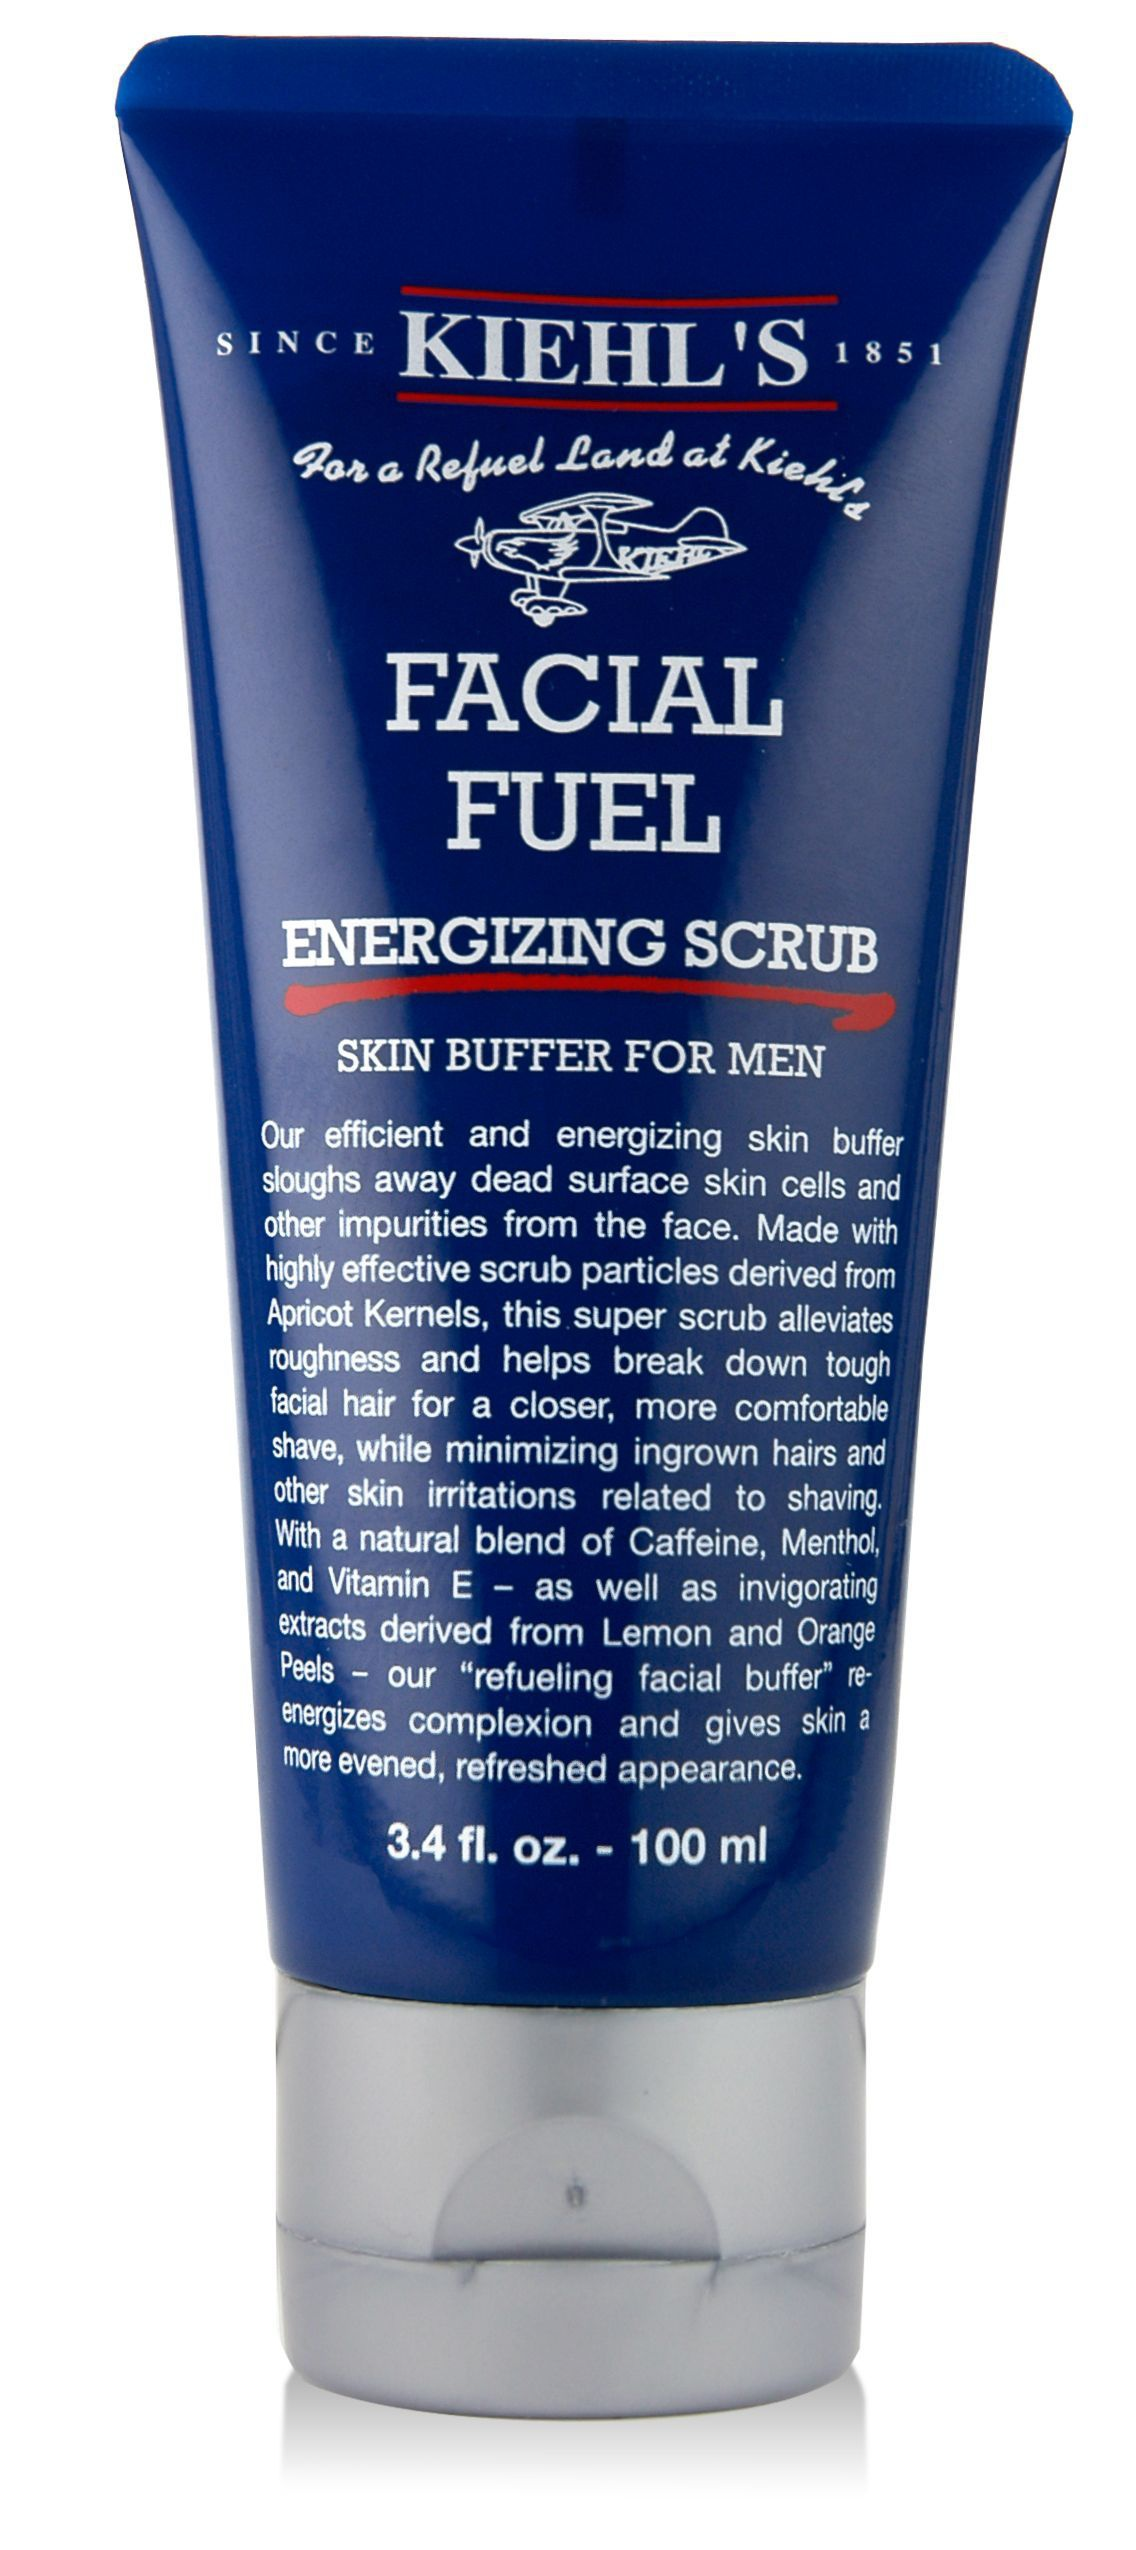 Kiehl's Facial Fuel Energizing Face Scrub